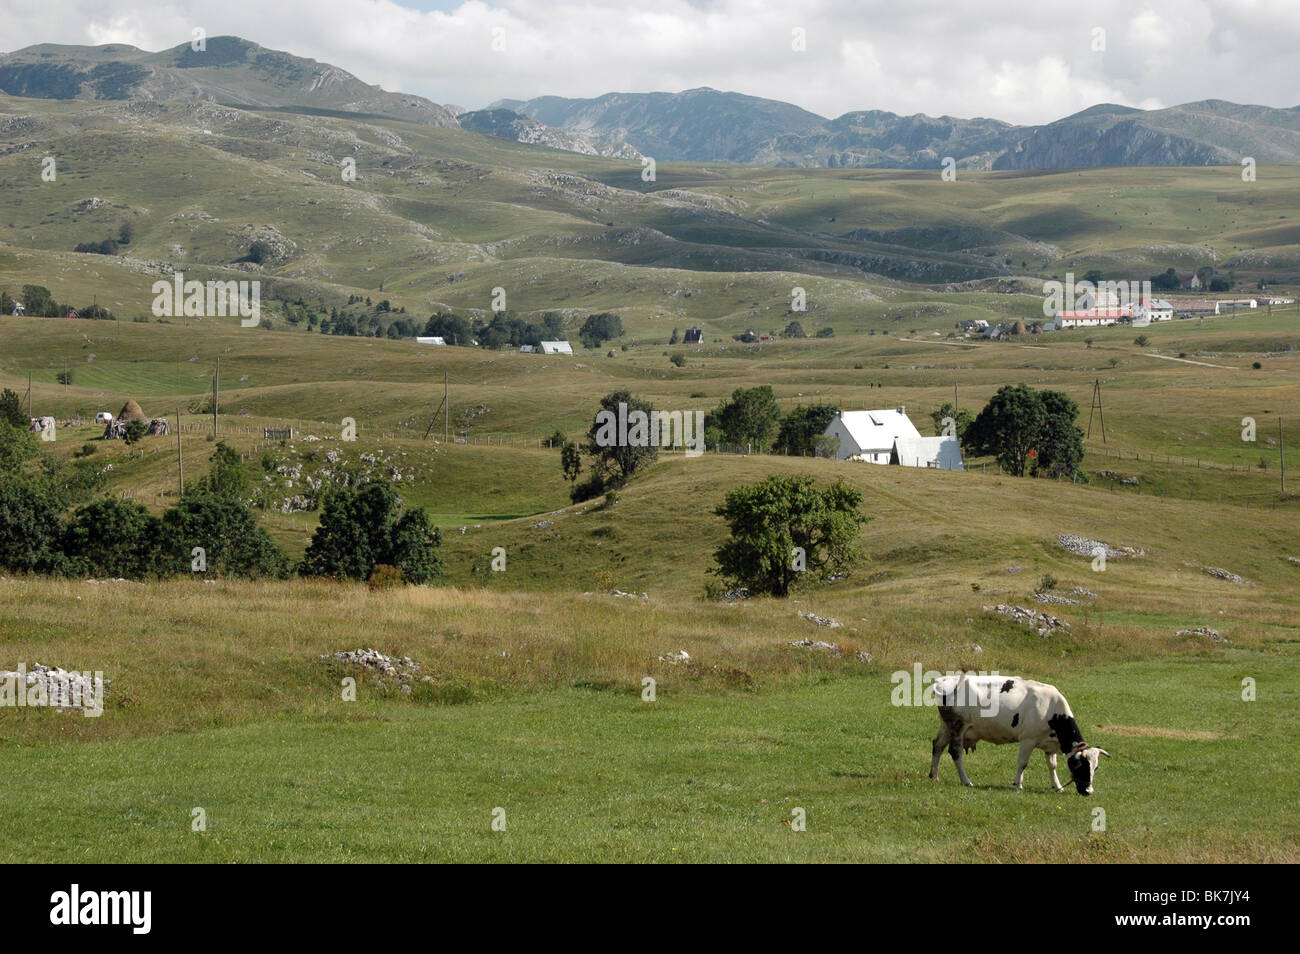 A view of the countryside and mountains, in the village of Trsa, in the Durmitor region of Montenegro. Stock Photo